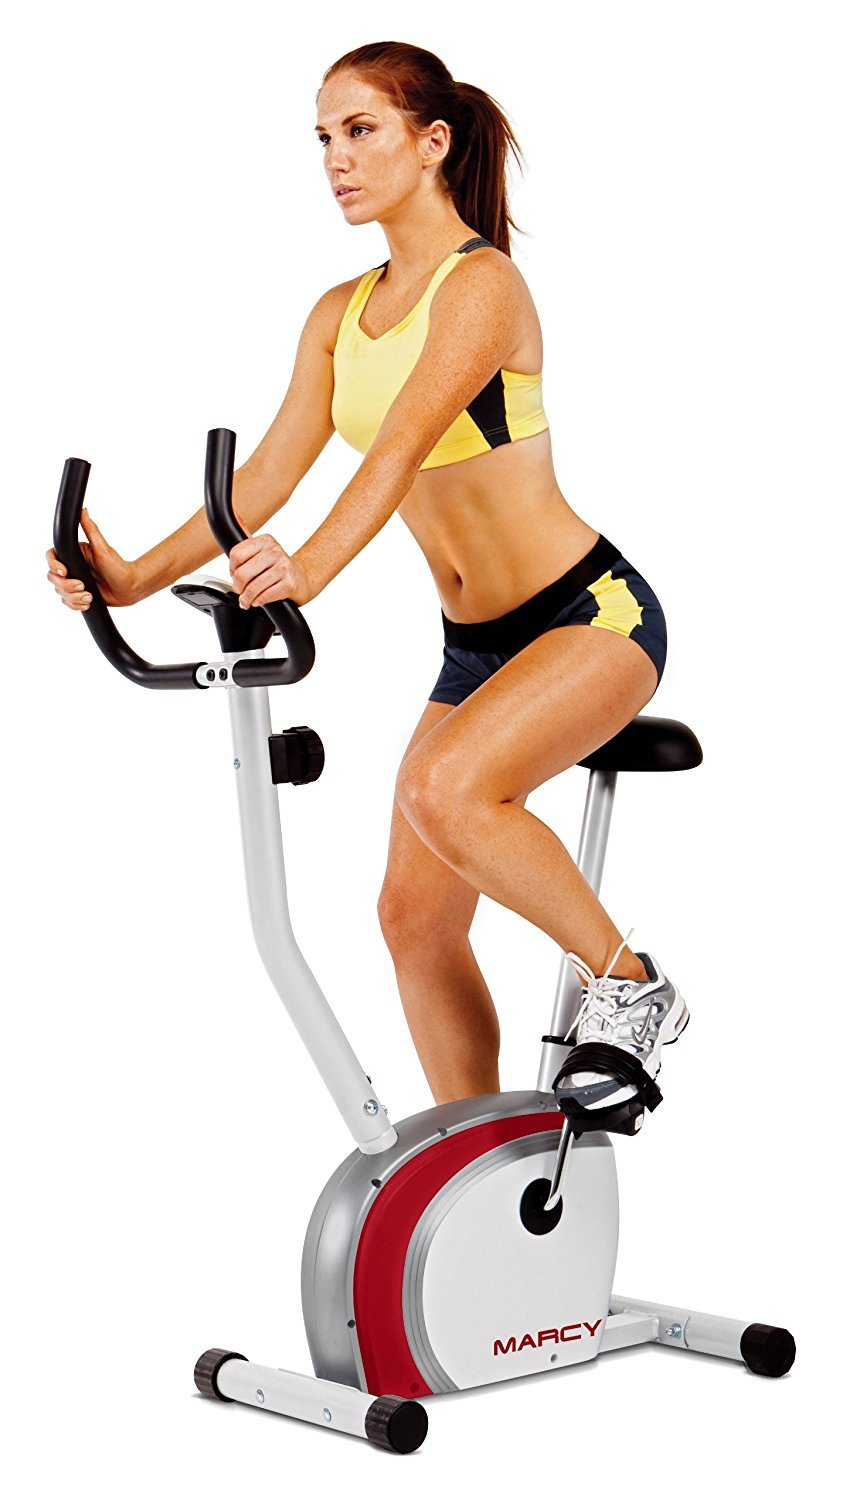 Marcy Upright Exercise Bike with Pulse, Adjustable Seat, and Magnetic Resistance NS-908U by Marcy